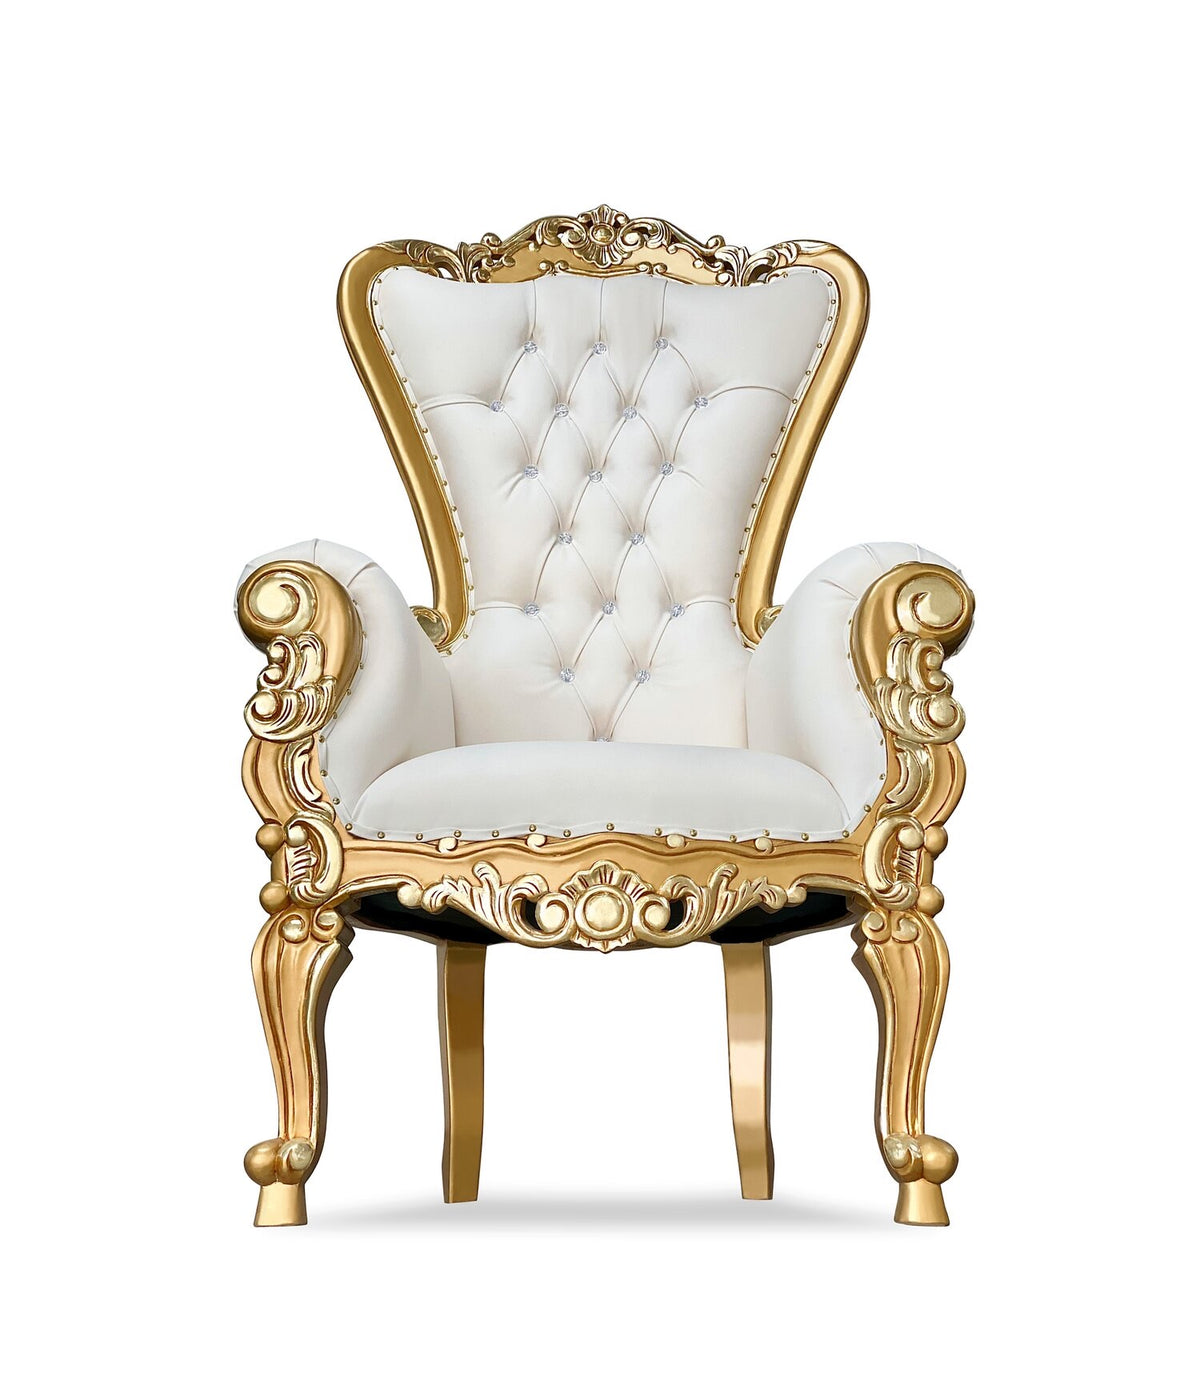 Gold & White Adult Royal Chair